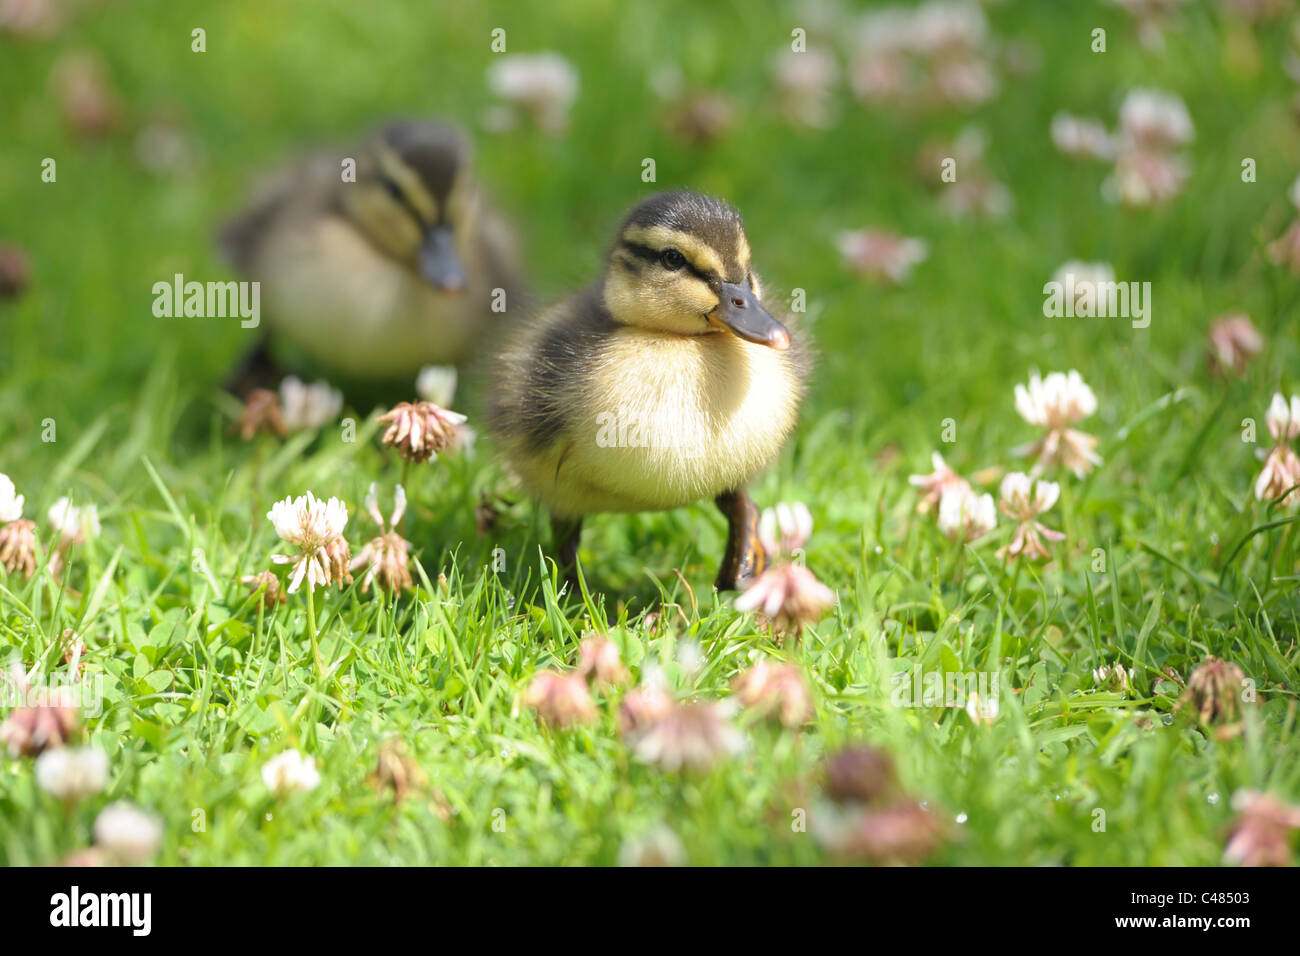 A close up of a pair of cute, baby ducklings walking through the grass.... Stock Photo